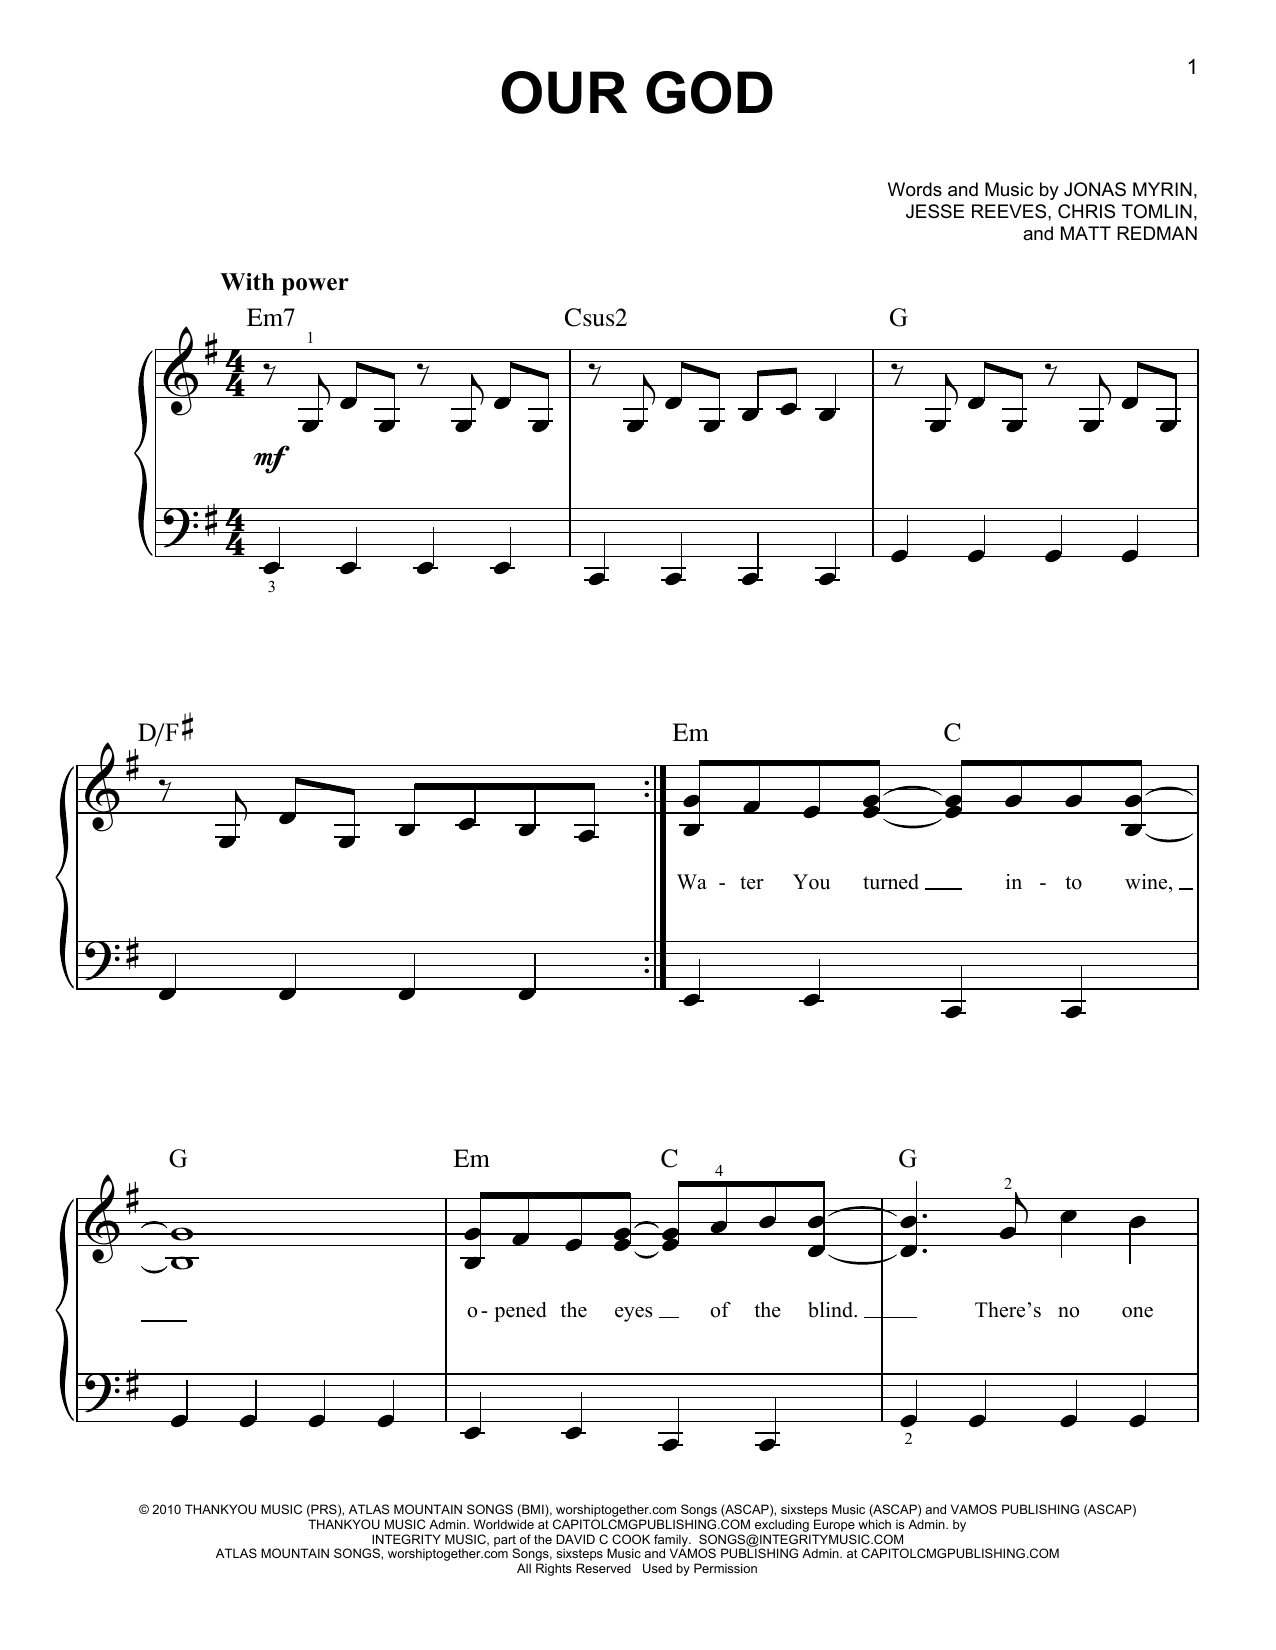 Chris Tomlin Our God sheet music notes and chords